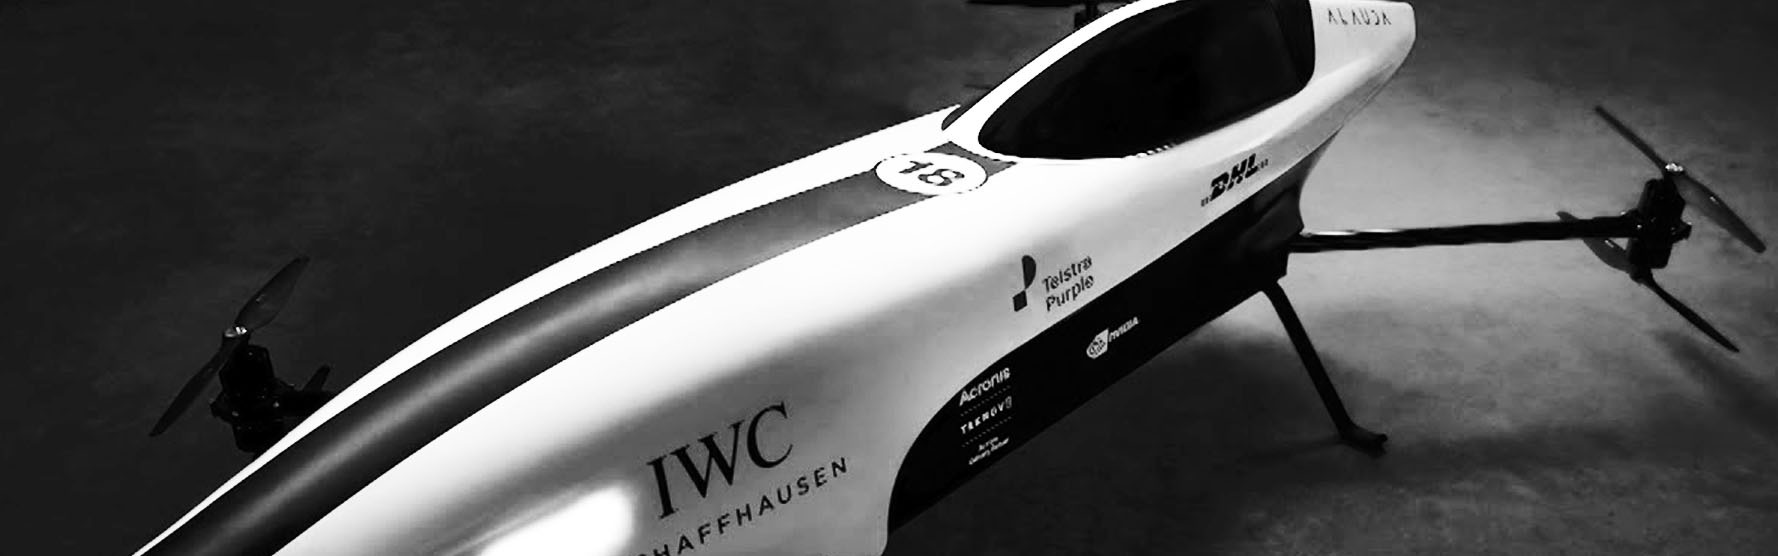 Reuters Report: How 5G will enable flying car racing